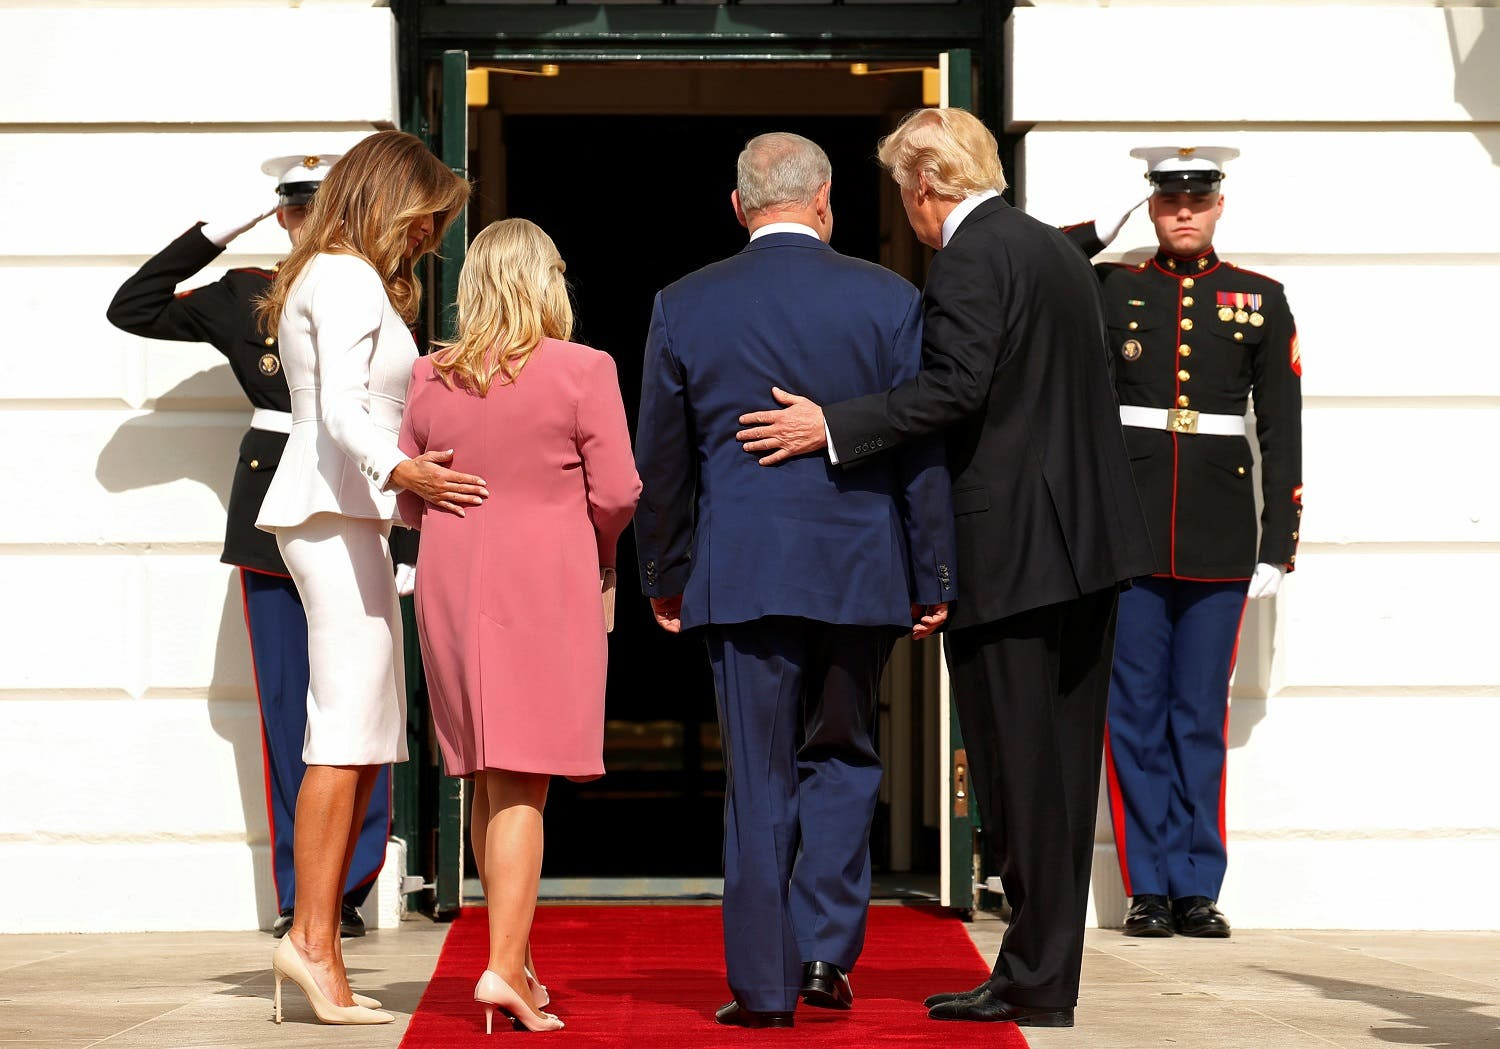 US President Donald Trump (R) and first lady Melania Trump (L) greet Israeli Prime Minister Benjamin Netanyahu and his wife Sara as they arrive at the South Portico of the White House, February 15, 2017 (Photo: Reuters/Kevin Lamarque)